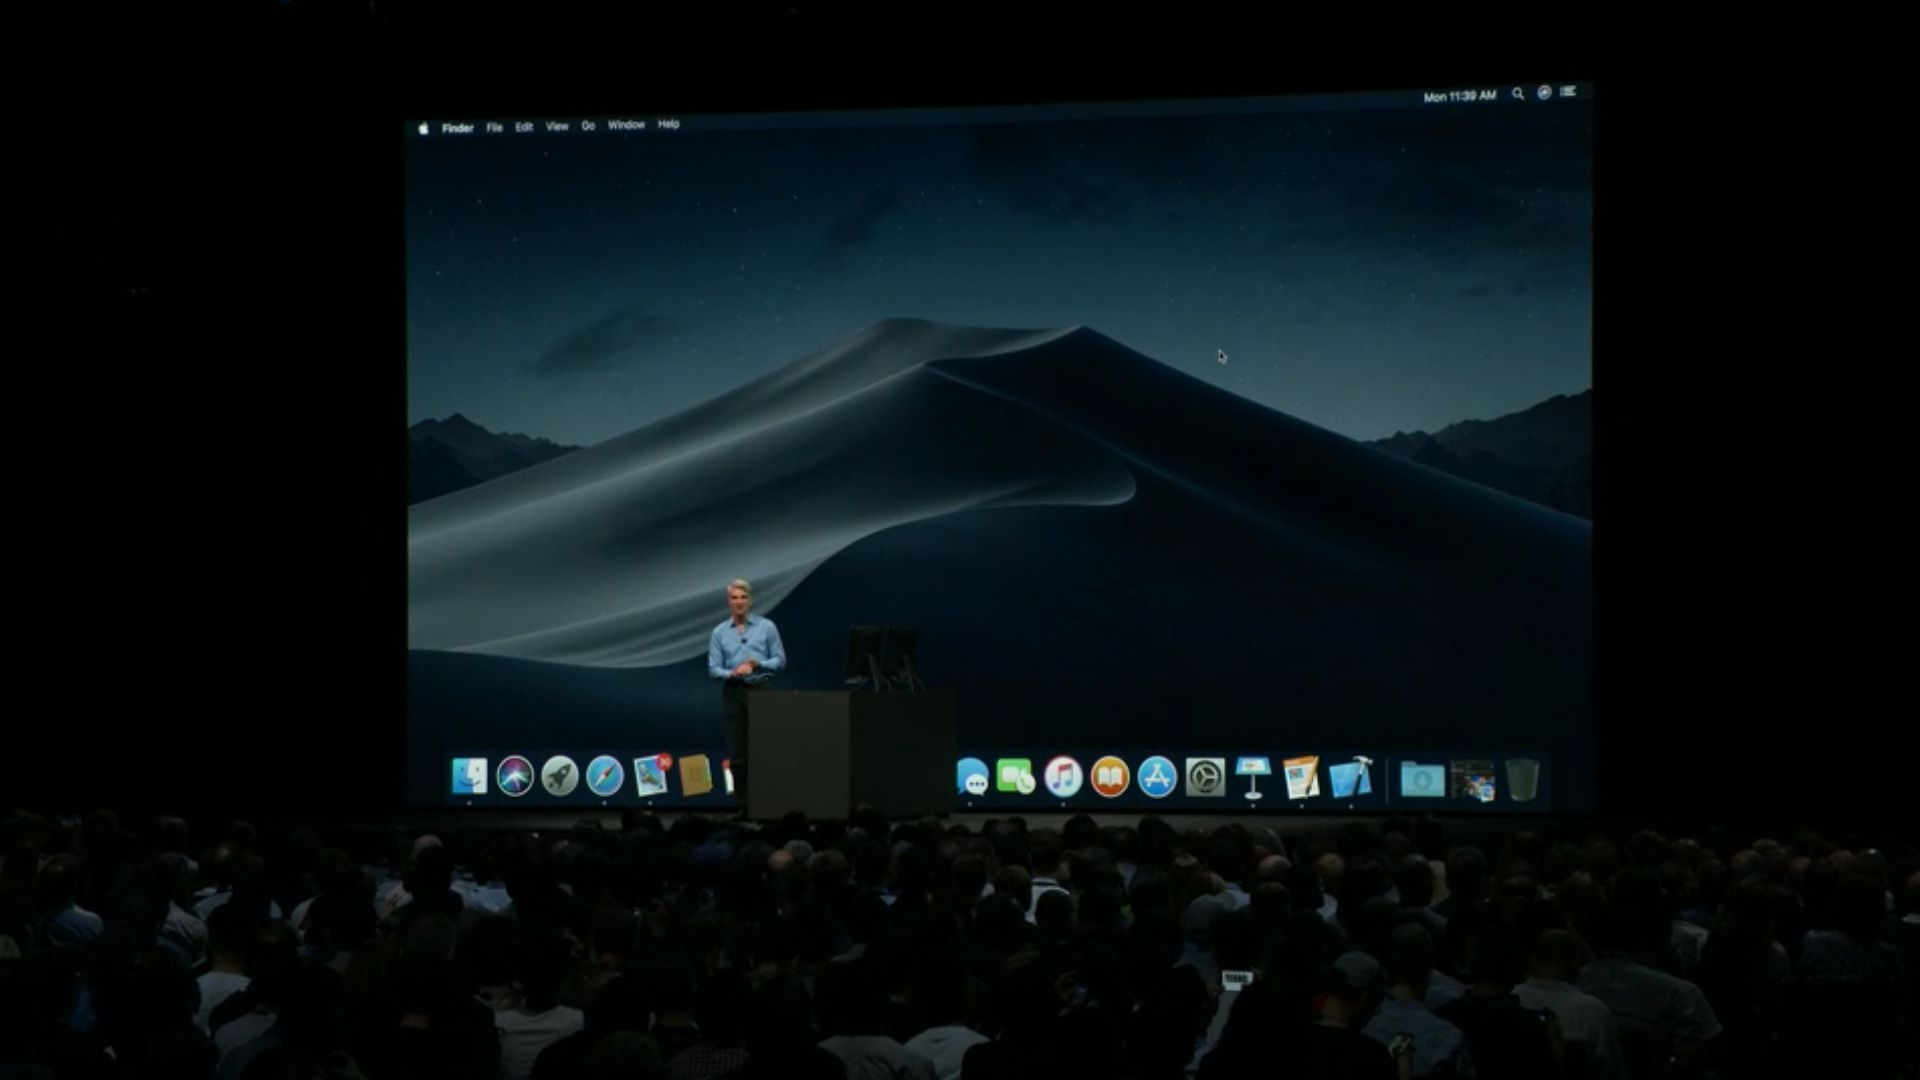 macOS Mojave update announced with dark mode, desktop stacks